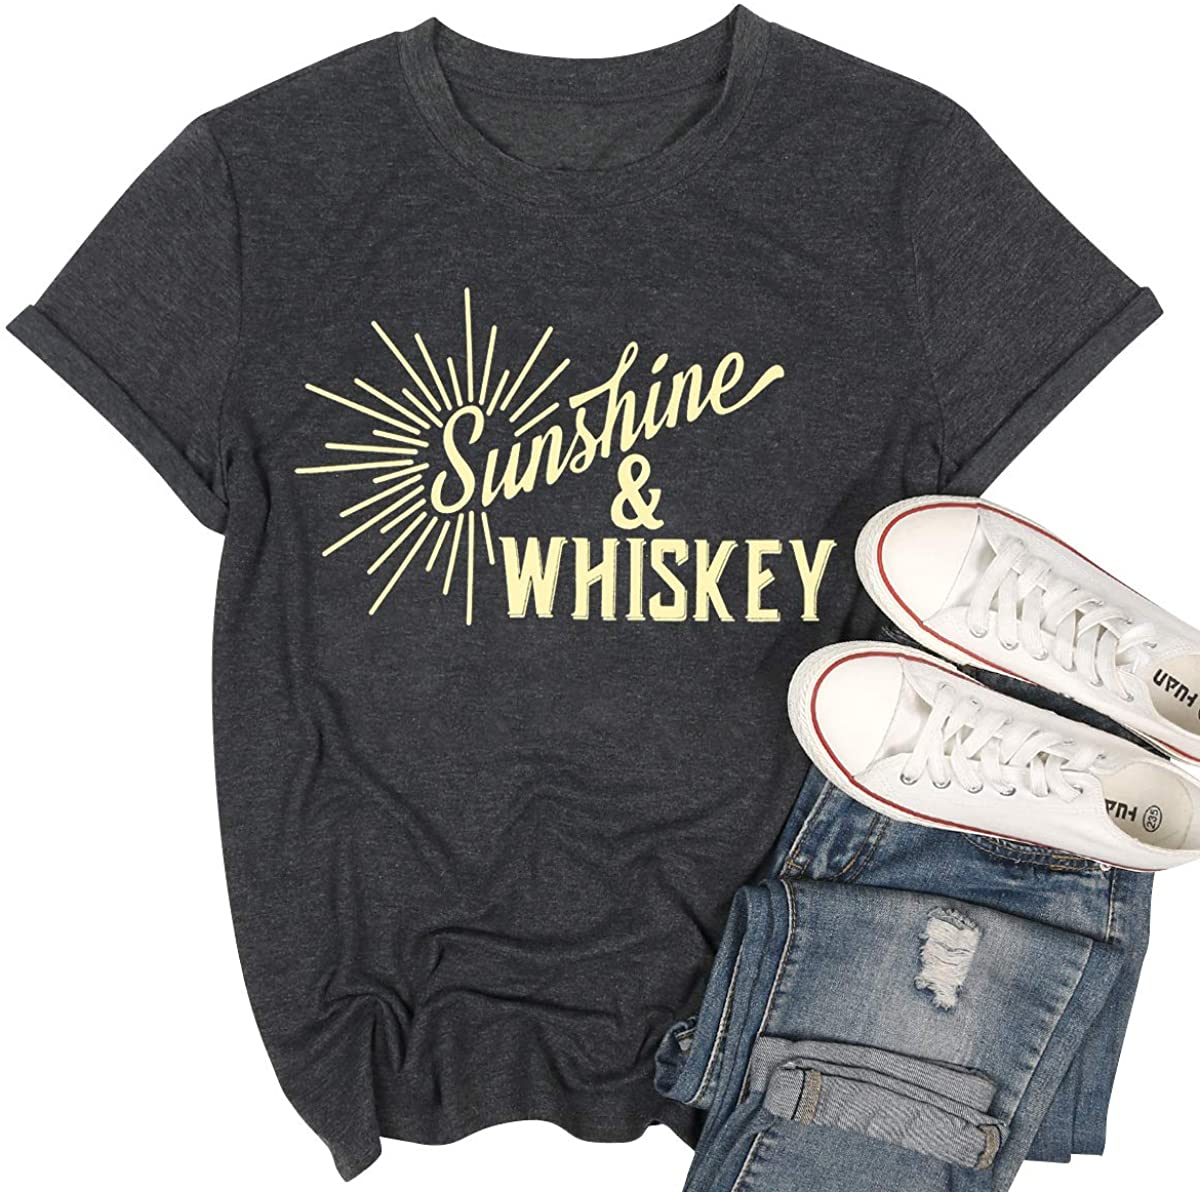 Sunshine and Whiskey Shirt Womens Vintage Graphic T Shirts Summer Holiday Country Short Sleeve Tee Tops